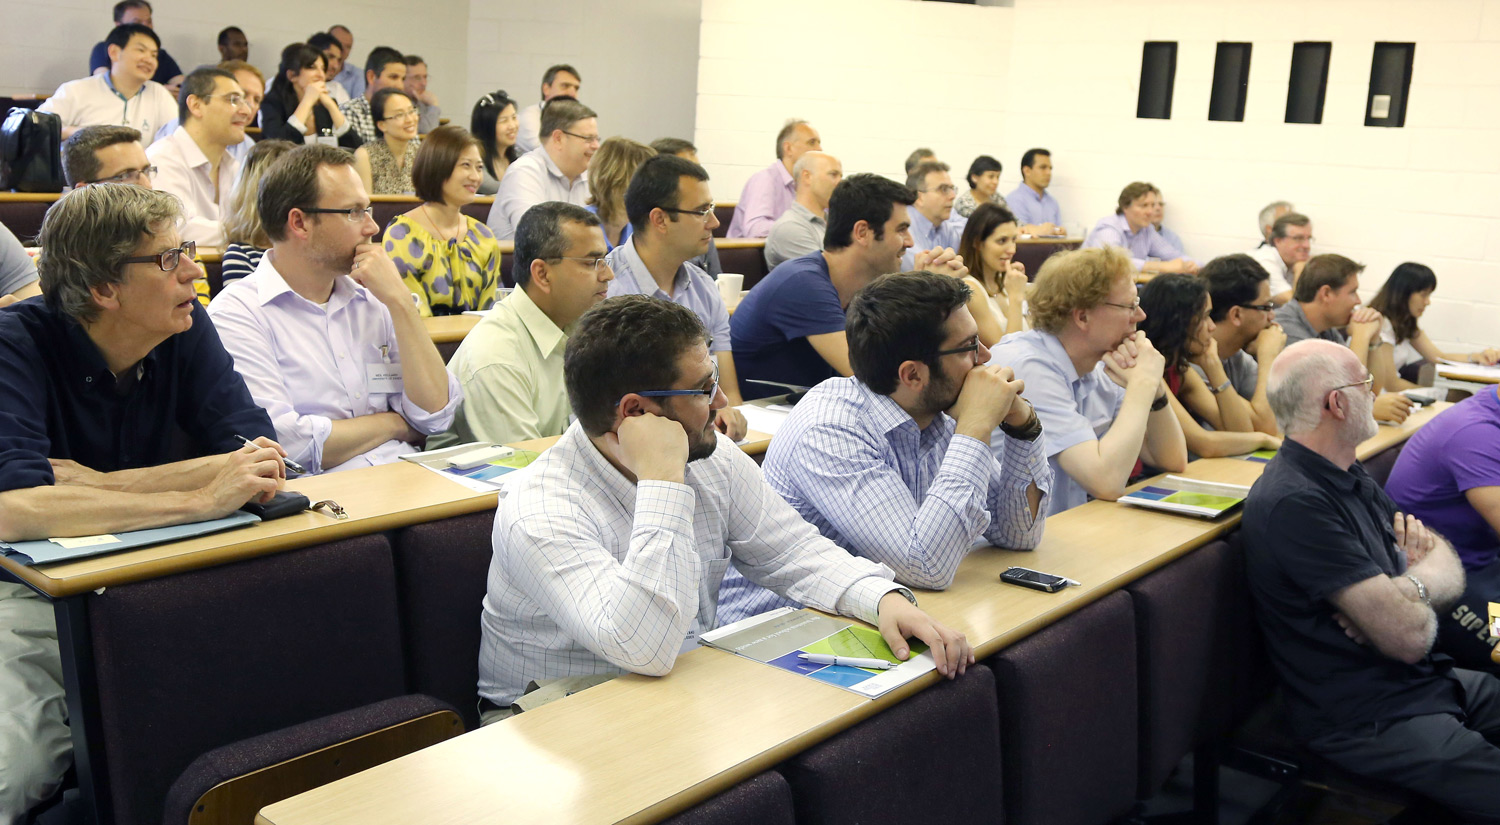 Academics listening to a lecture